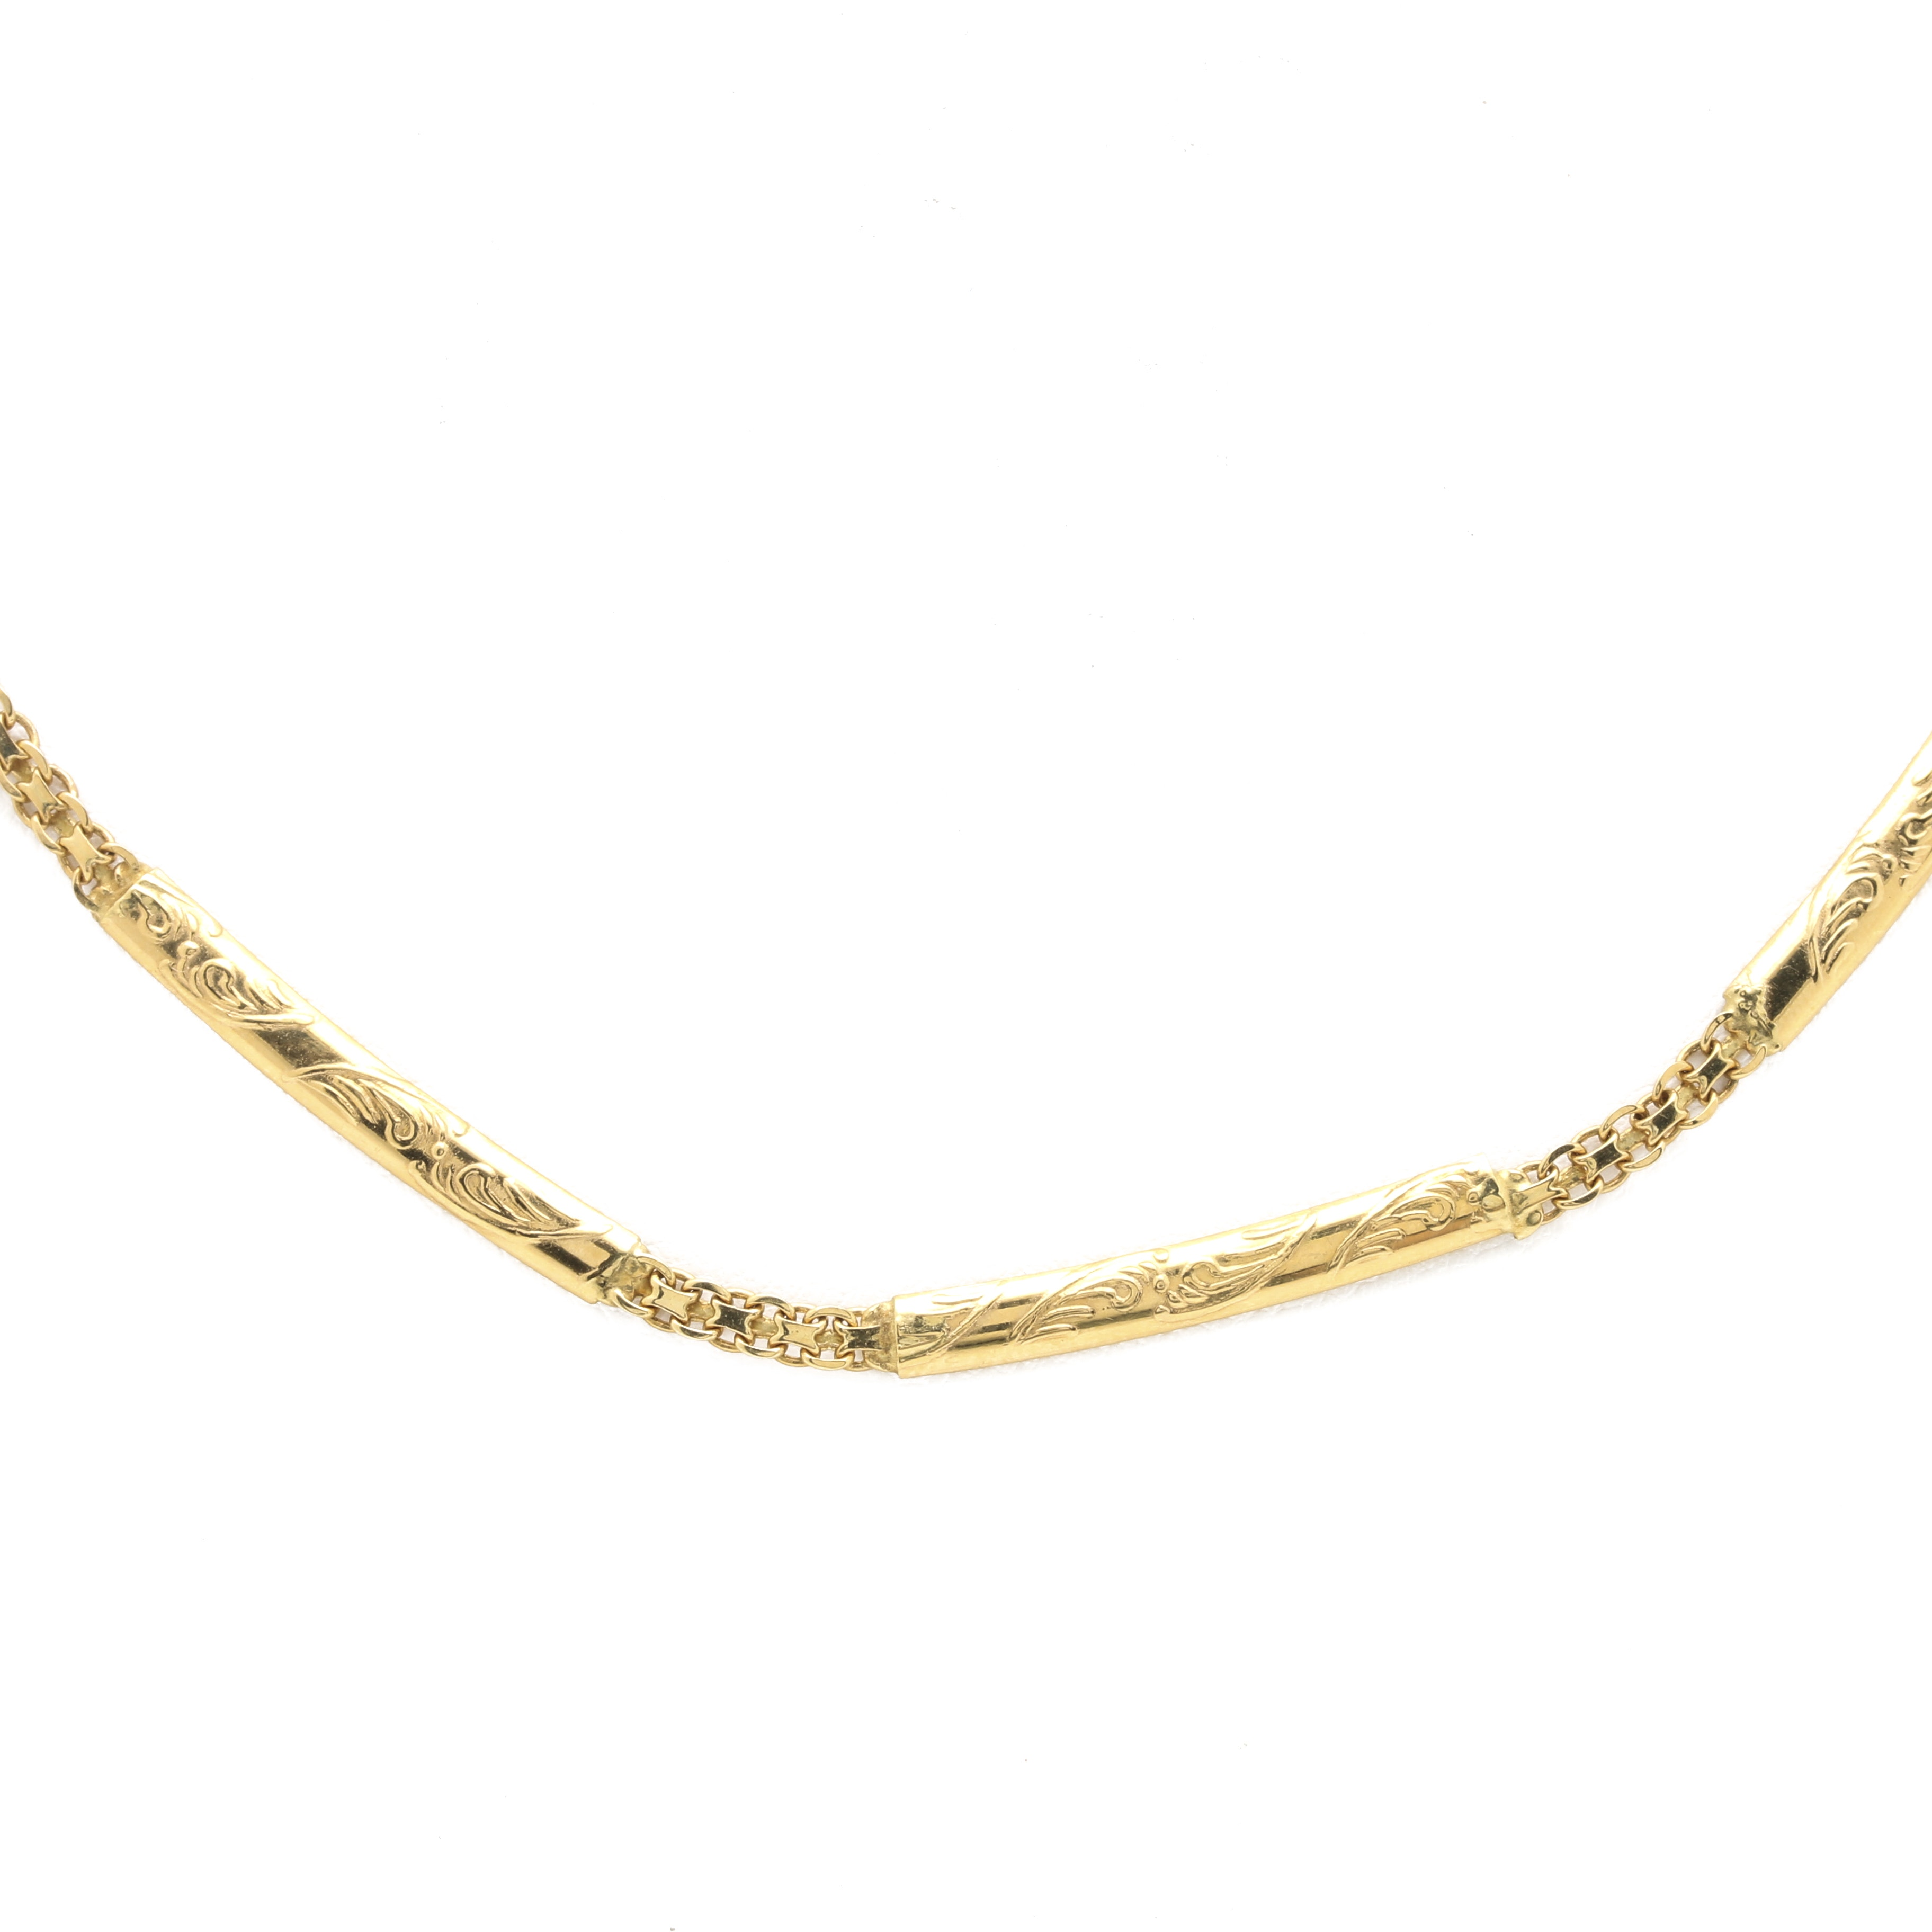 18K Yellow Gold Fancy Link Necklace With 14K Clasp